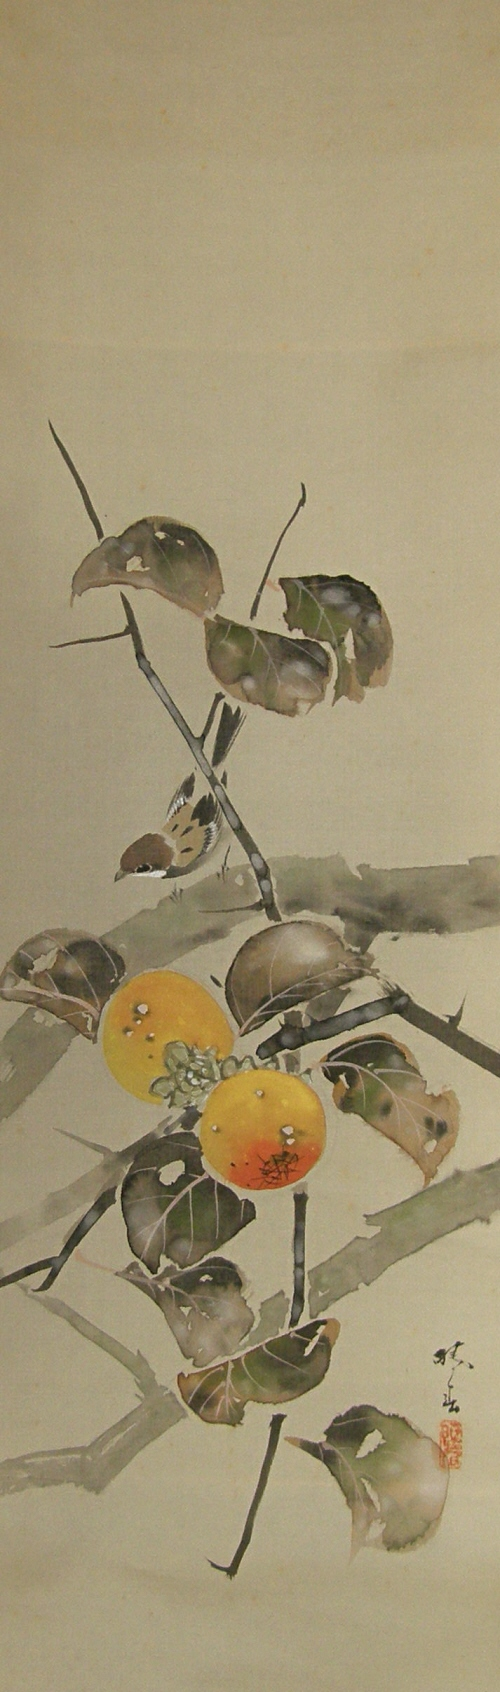 Japanese Date Plum Nuts and Leaves, Sparrow